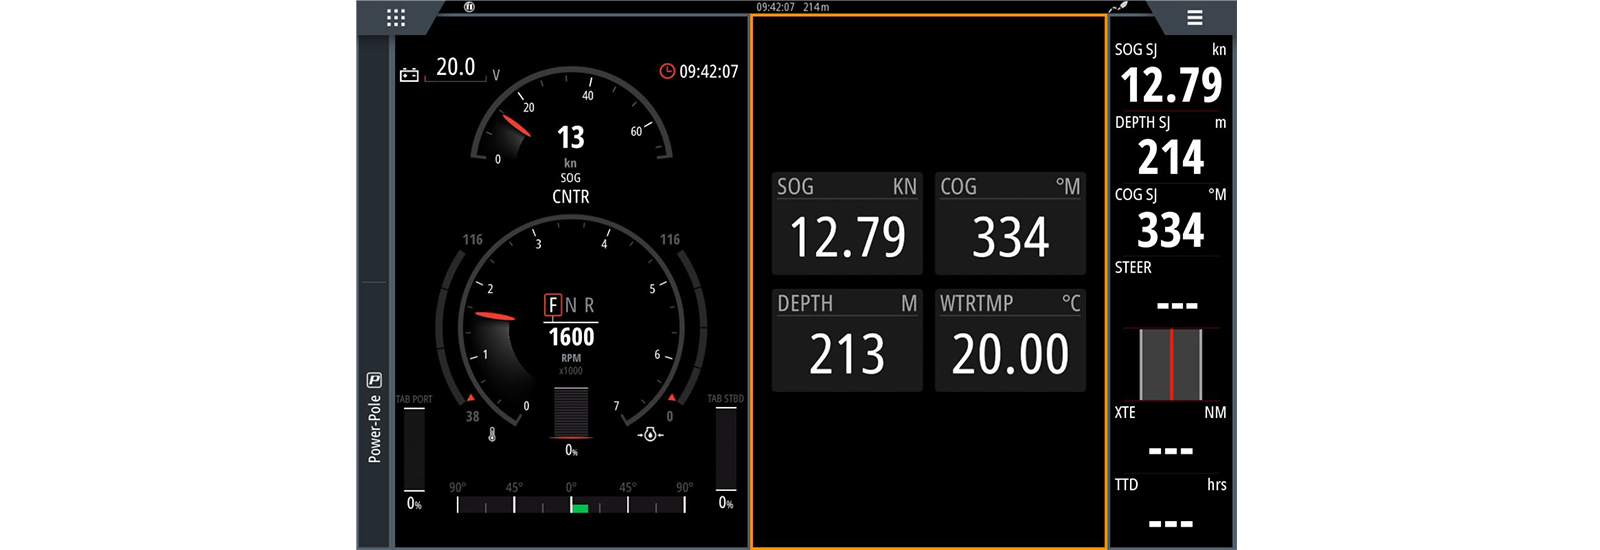 simrad-instruments-software-update.png